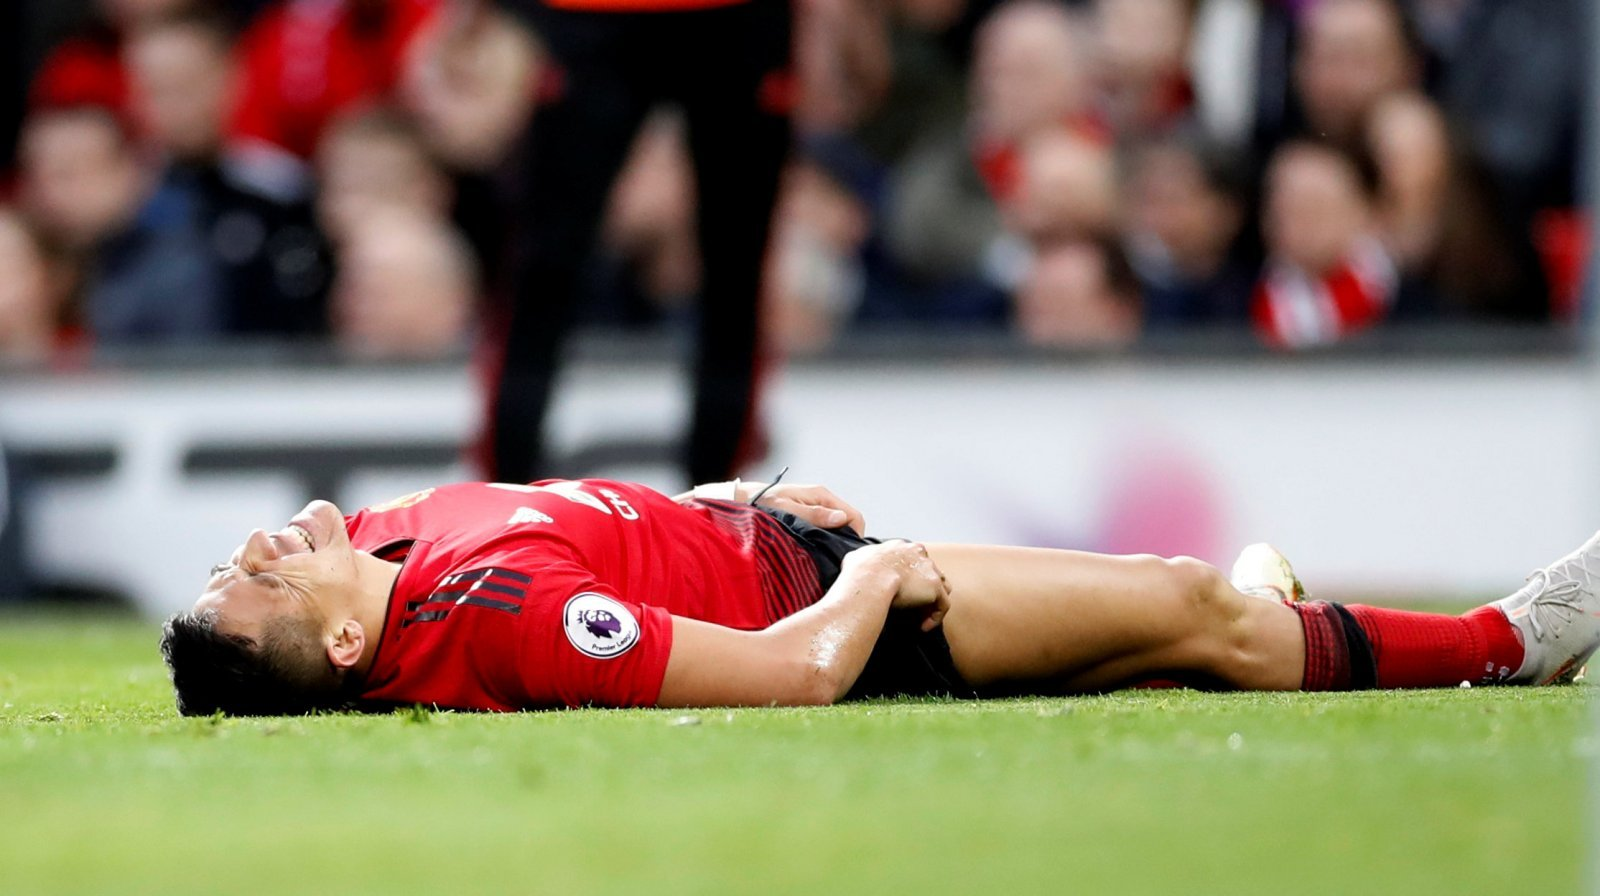 Alexis Sanchez's Manchester United career effectively over after latest injury